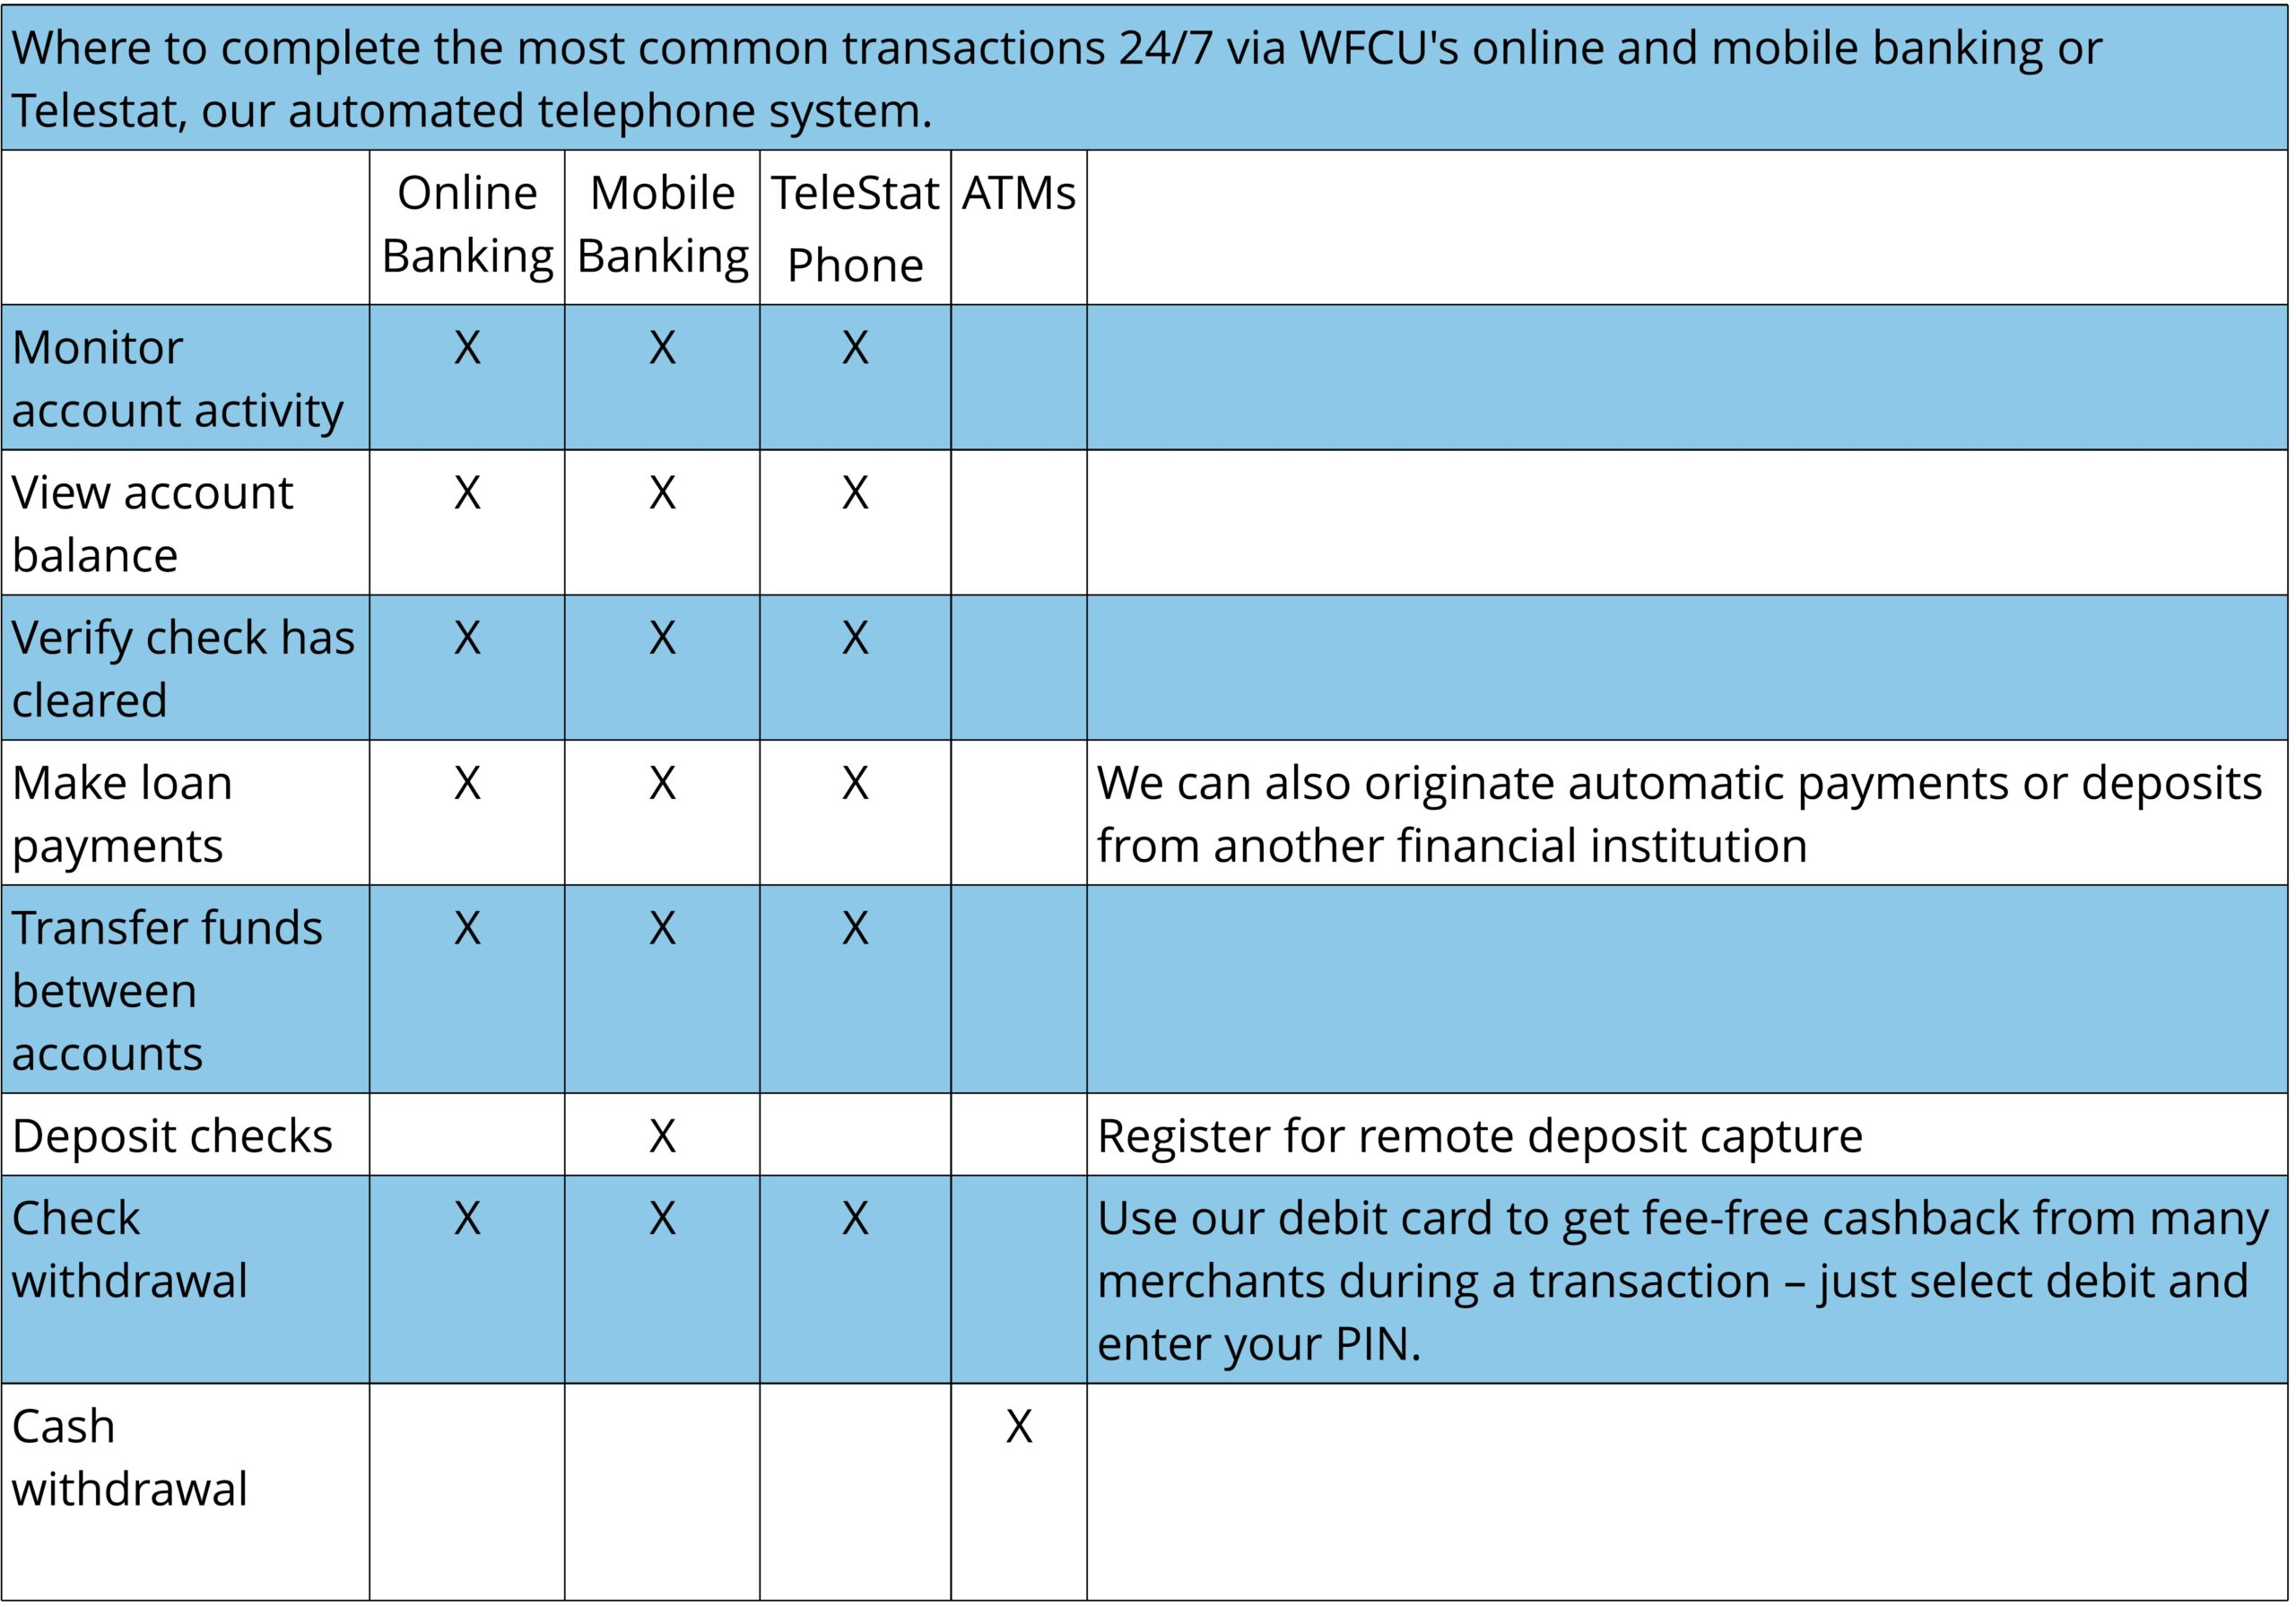 table for online/mobile banking transactions